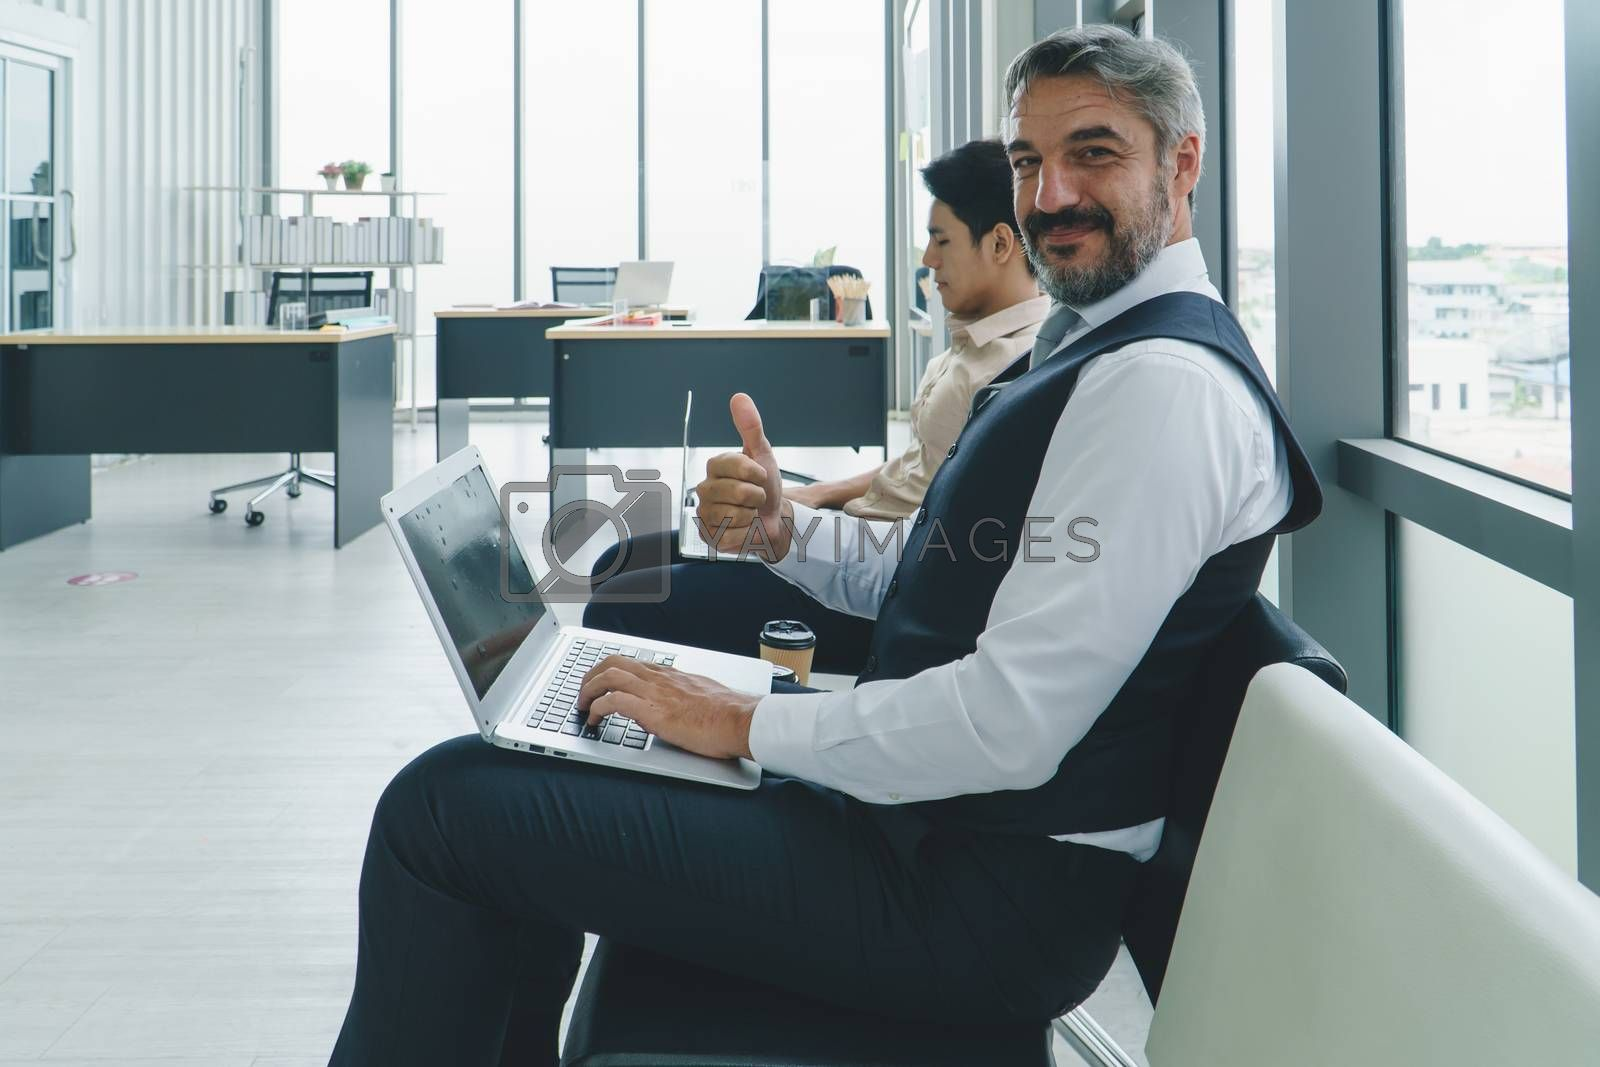 group of businessmen using laptops and drinks coffee before a business meeting. Asian young men and Adult male Caucasian people talking while awaiting an interview. social distancing is new normal